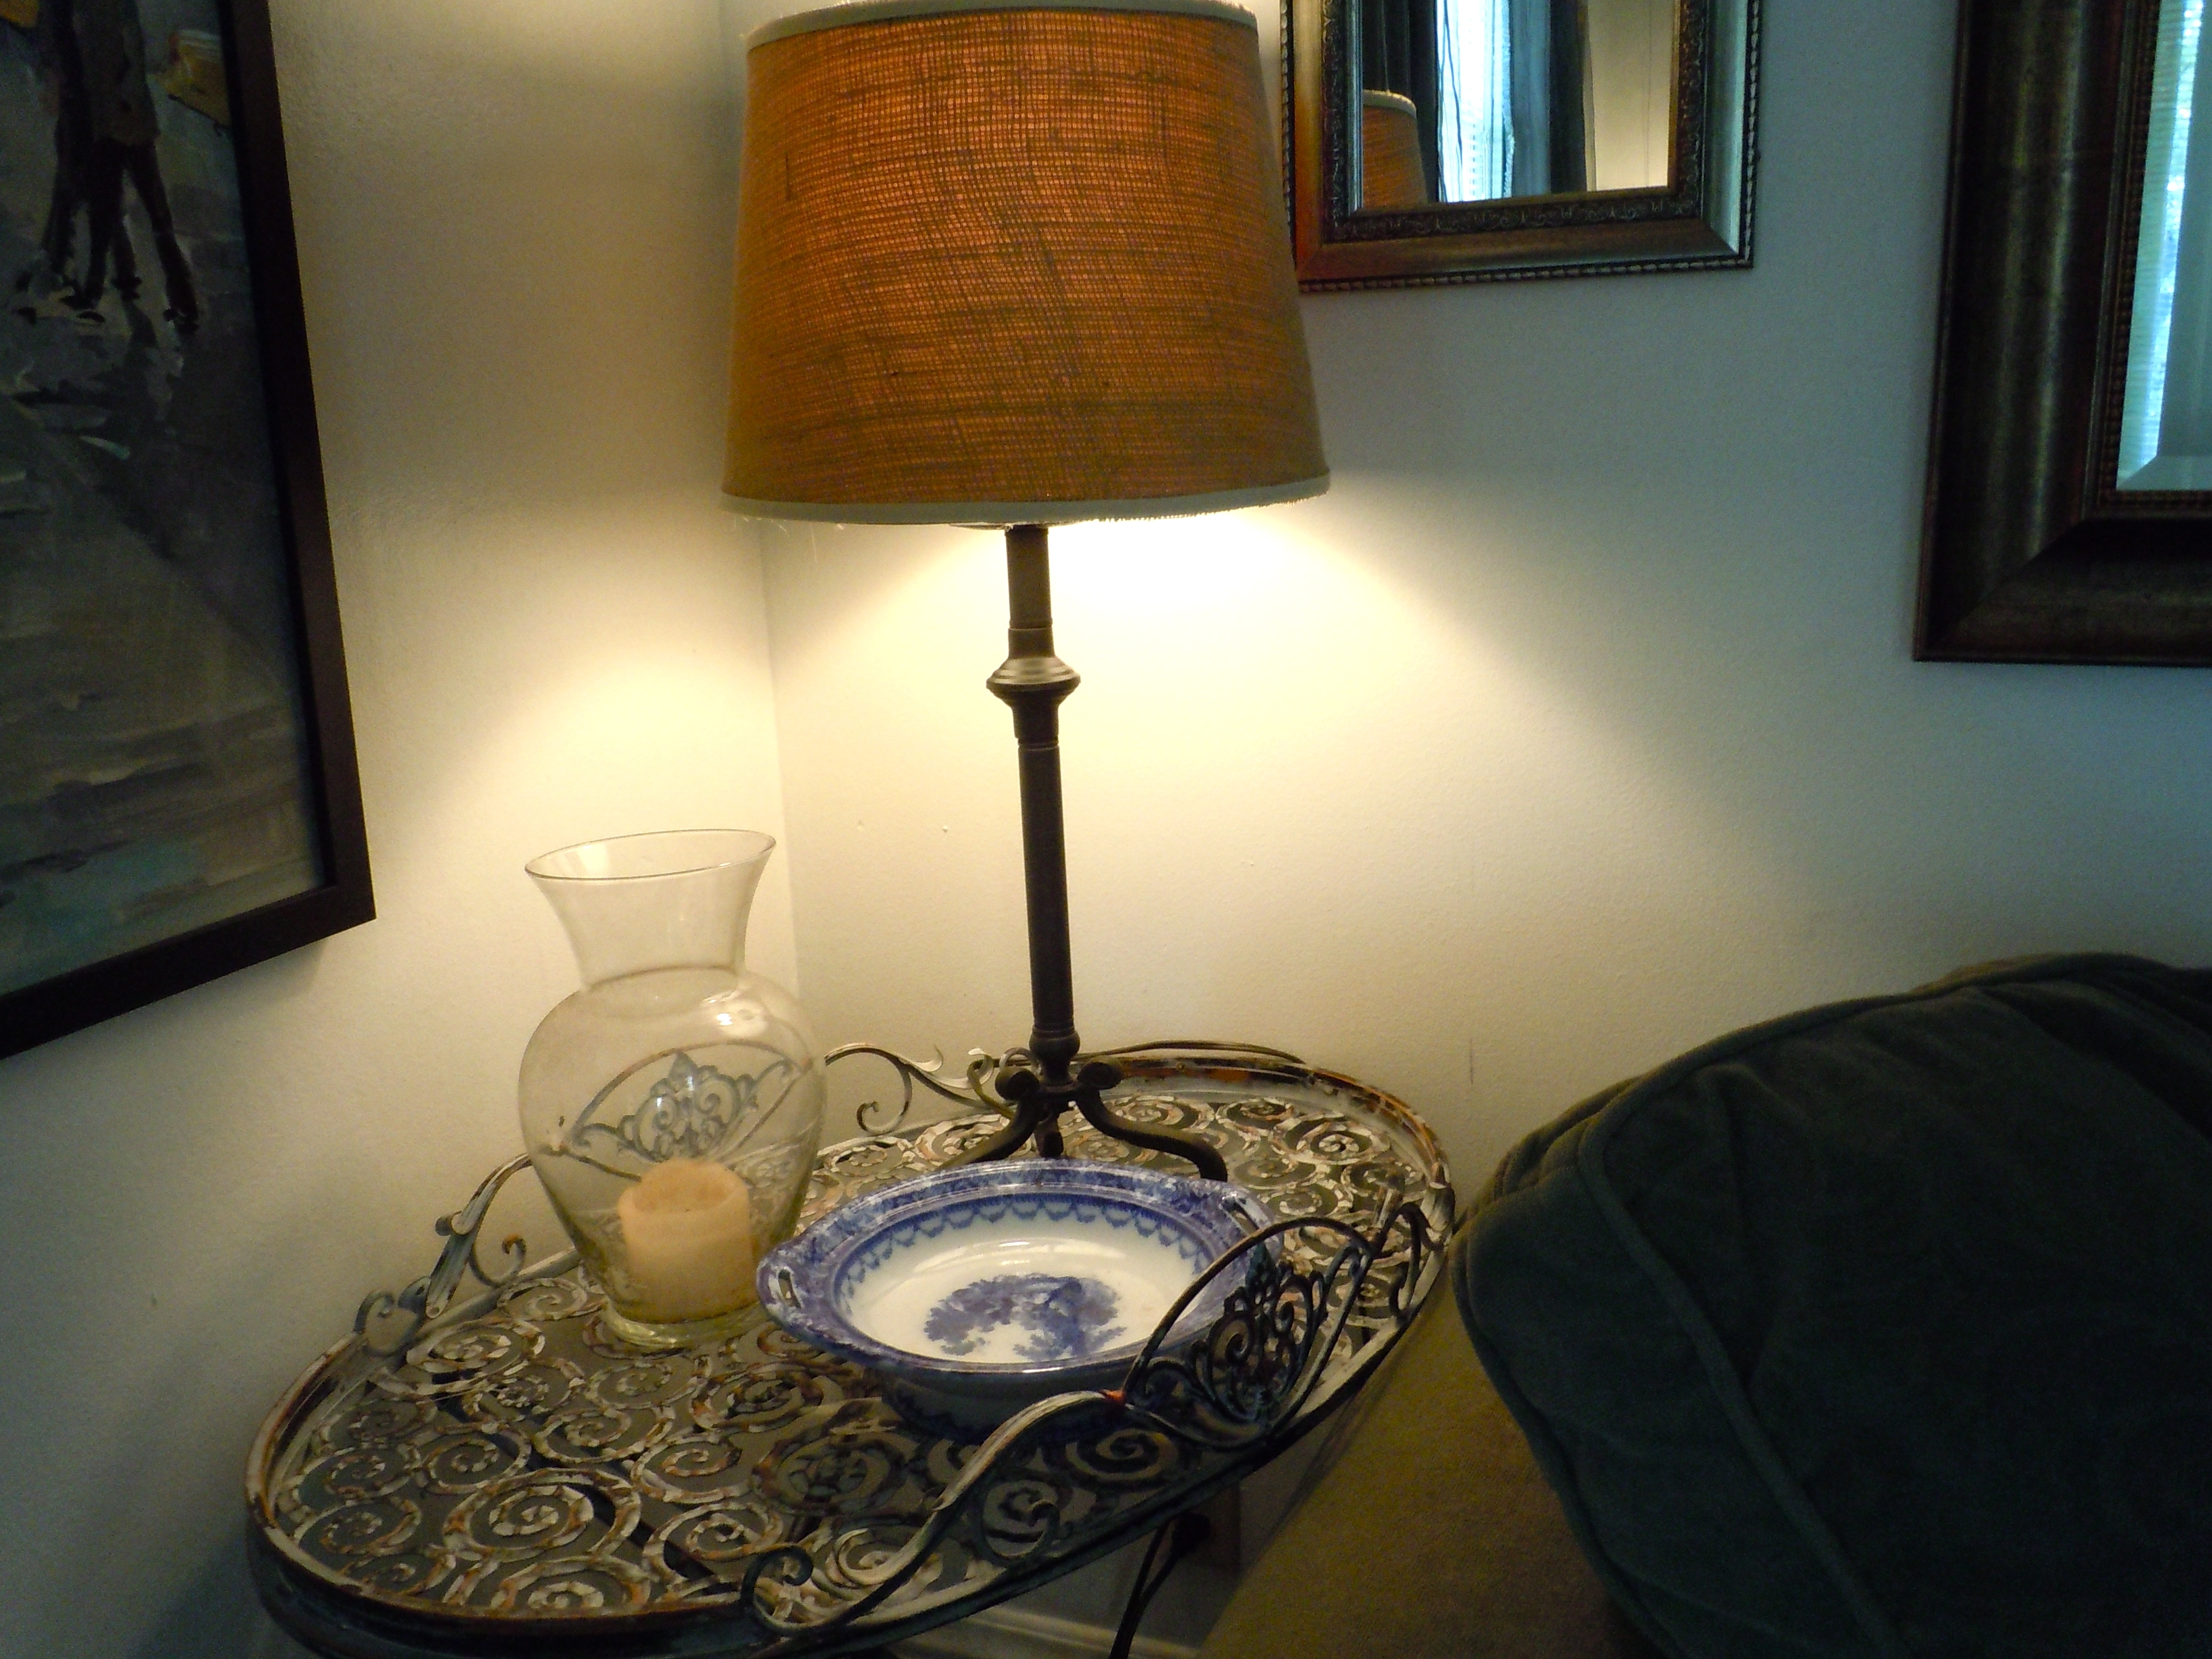 Wrought Iron Living Room Table Lamps Inside Most Current Decor & Tips: Chic Wrought Iron Bed Side Table With Burlap Lamp (View 11 of 15)